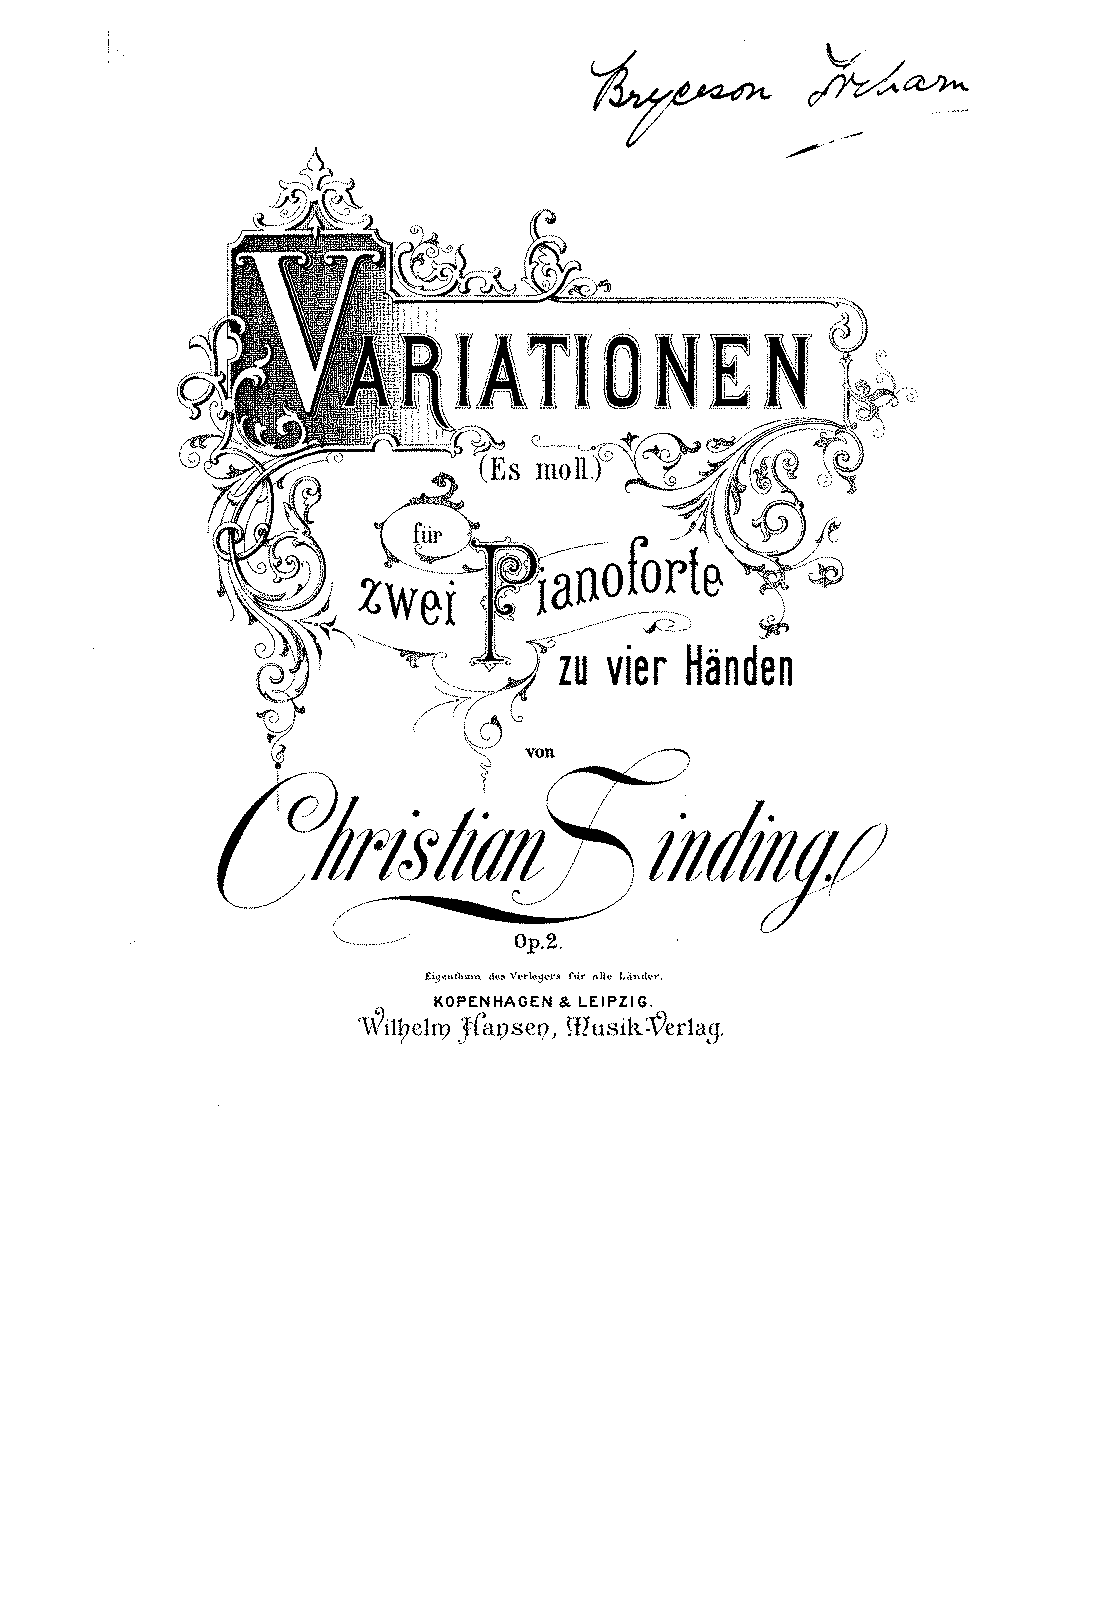 SIBLEY1802.11349.e27f-39087012850634variations piano1.pdf